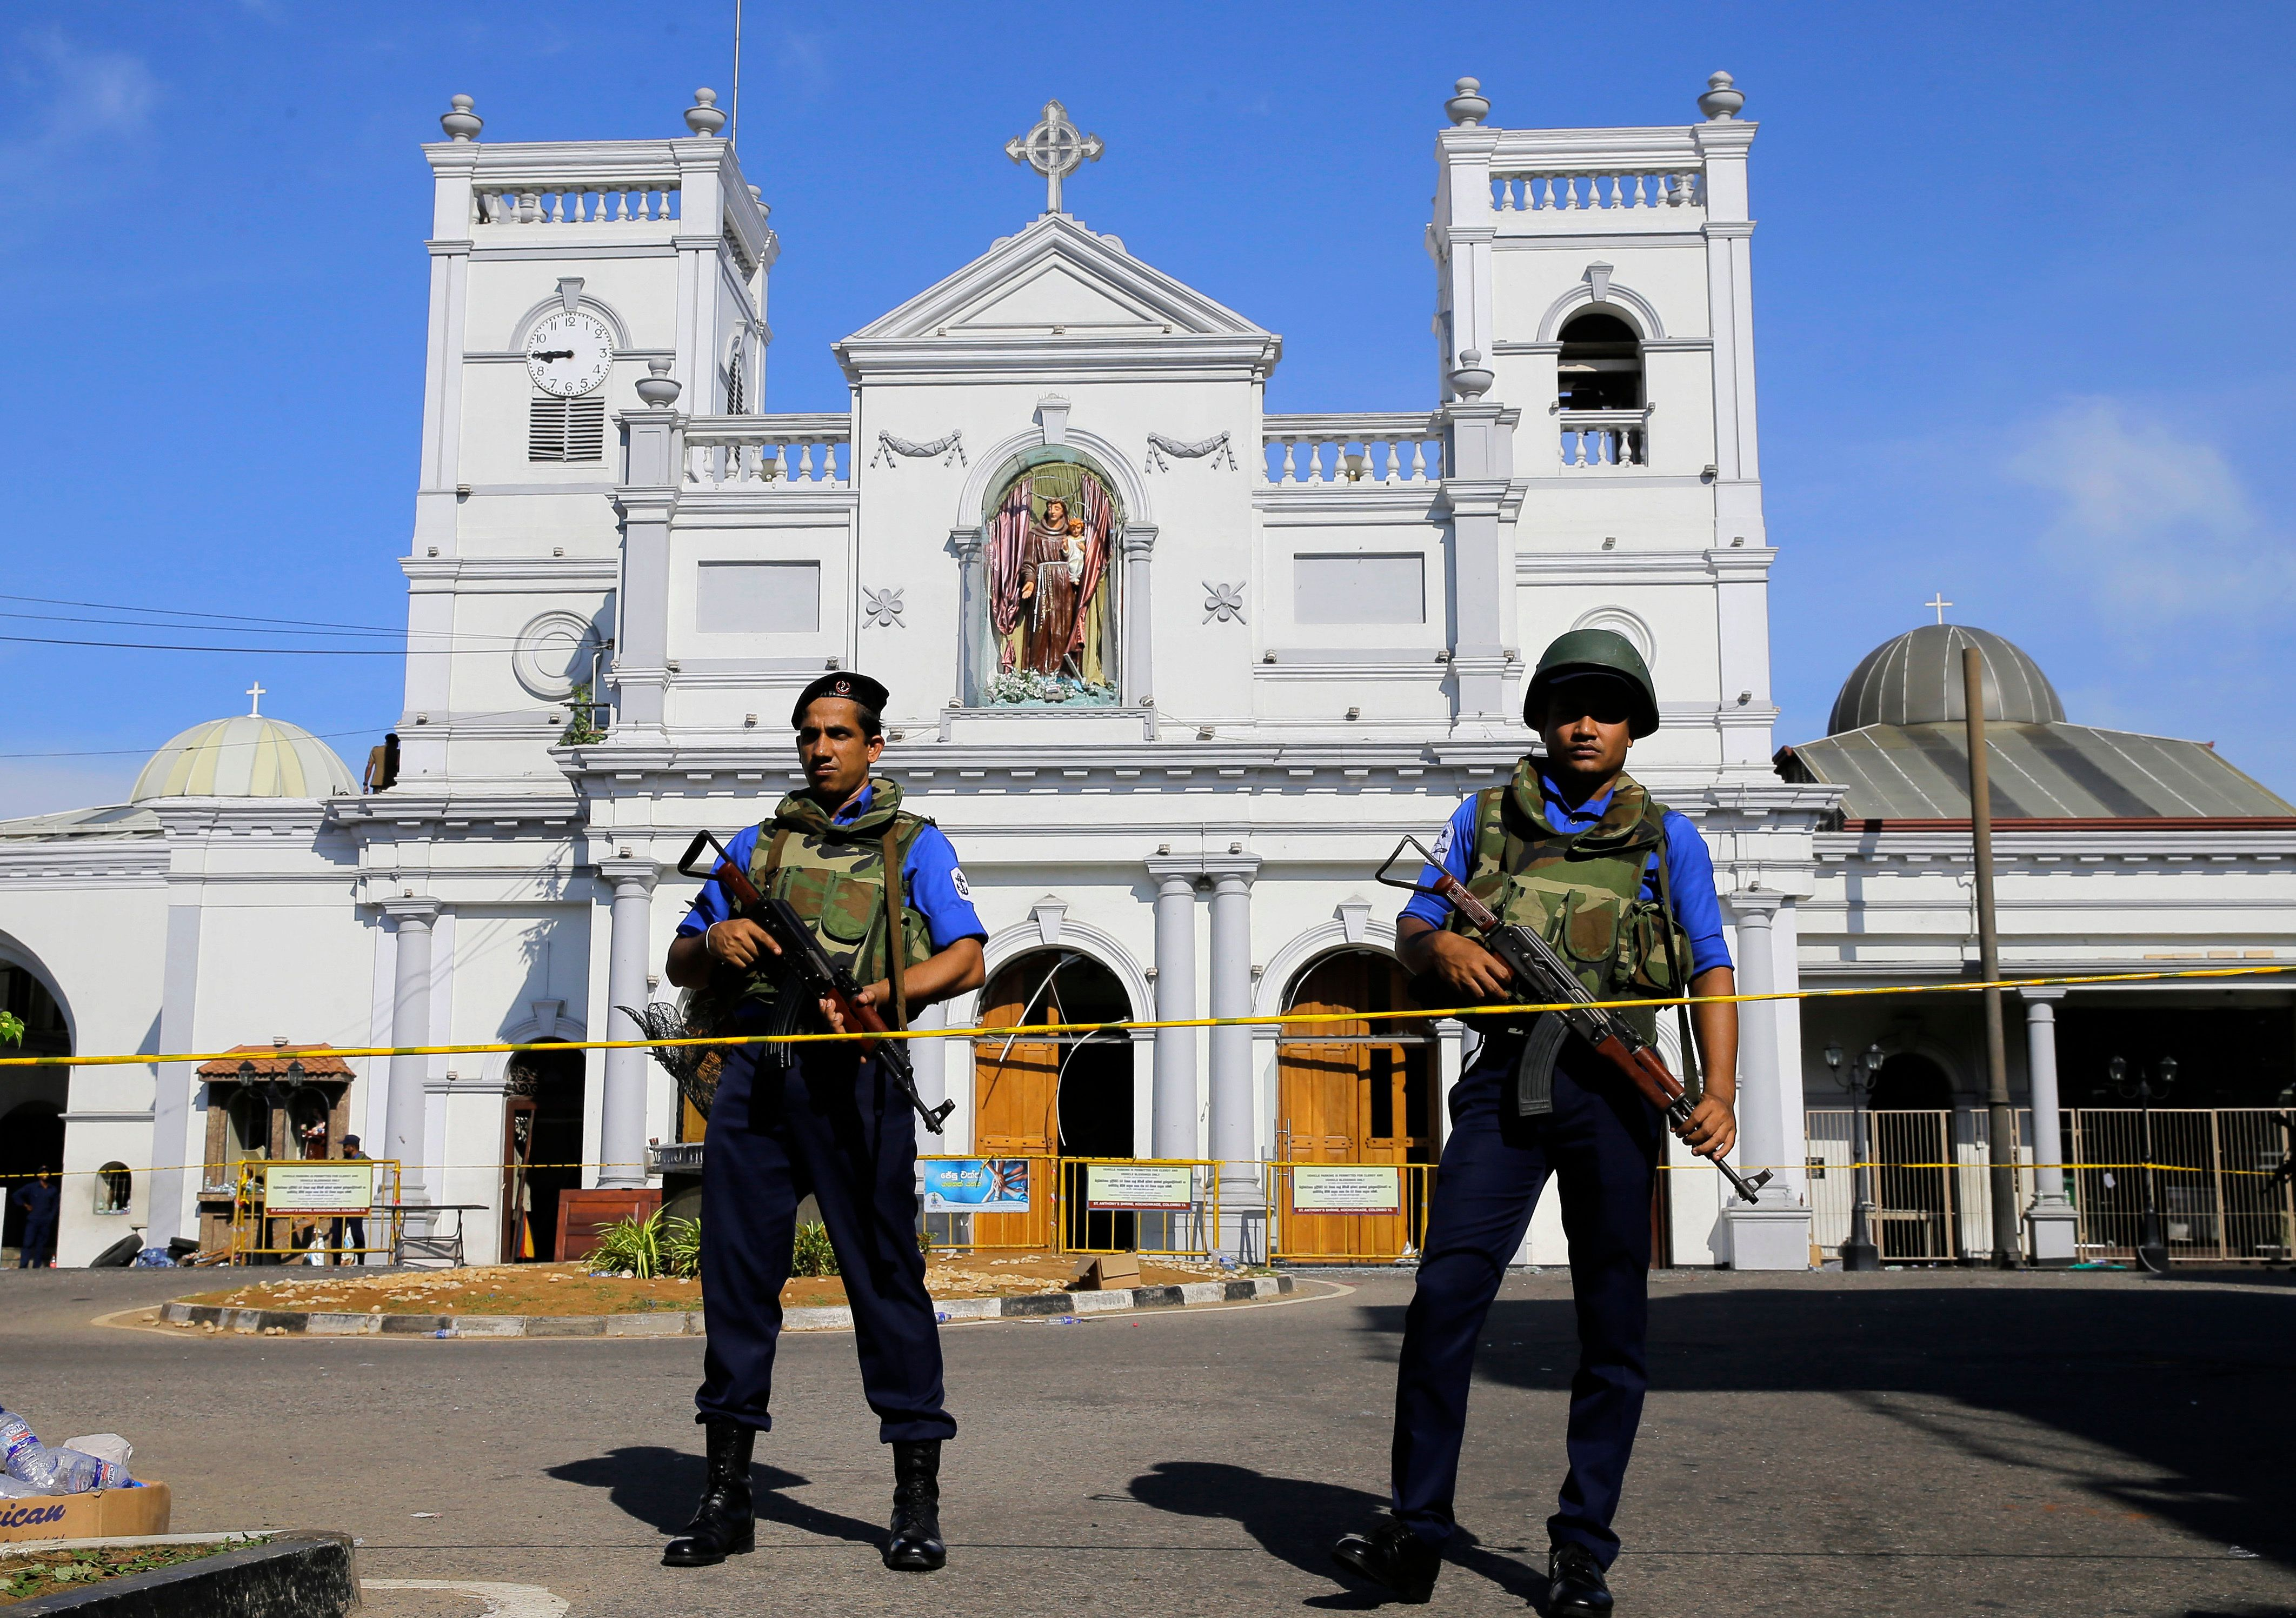 Sri Lankan Navy soldiers stand guard in front of the St. Anthony's Shrine a day after the series of blasts, in Colombo, Sri Lanka, Monday, April 22, 2019. Easter Sunday bombings of churches, luxury hotels and other sites that killed hundreds of people was Sri Lanka's deadliest violence since a devastating civil war in the South Asian island nation ended a decade ago. (AP Photo/Eranga Jayawardena)